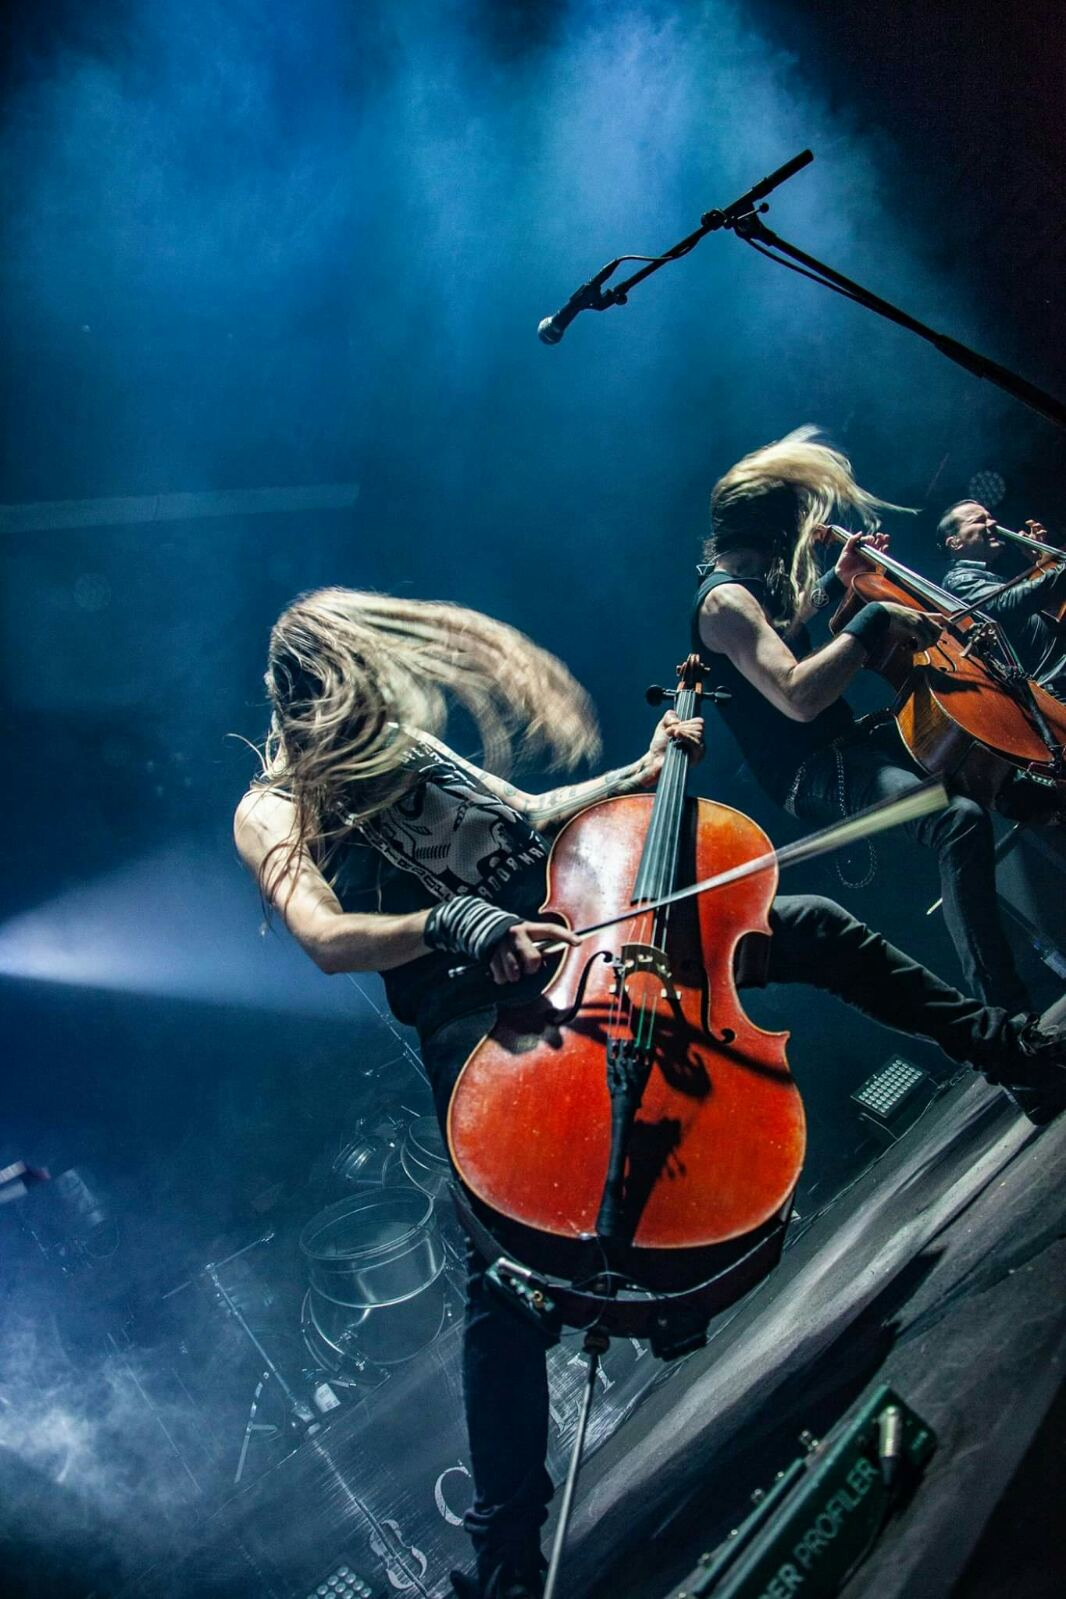 New video from APOCALYPTICA!